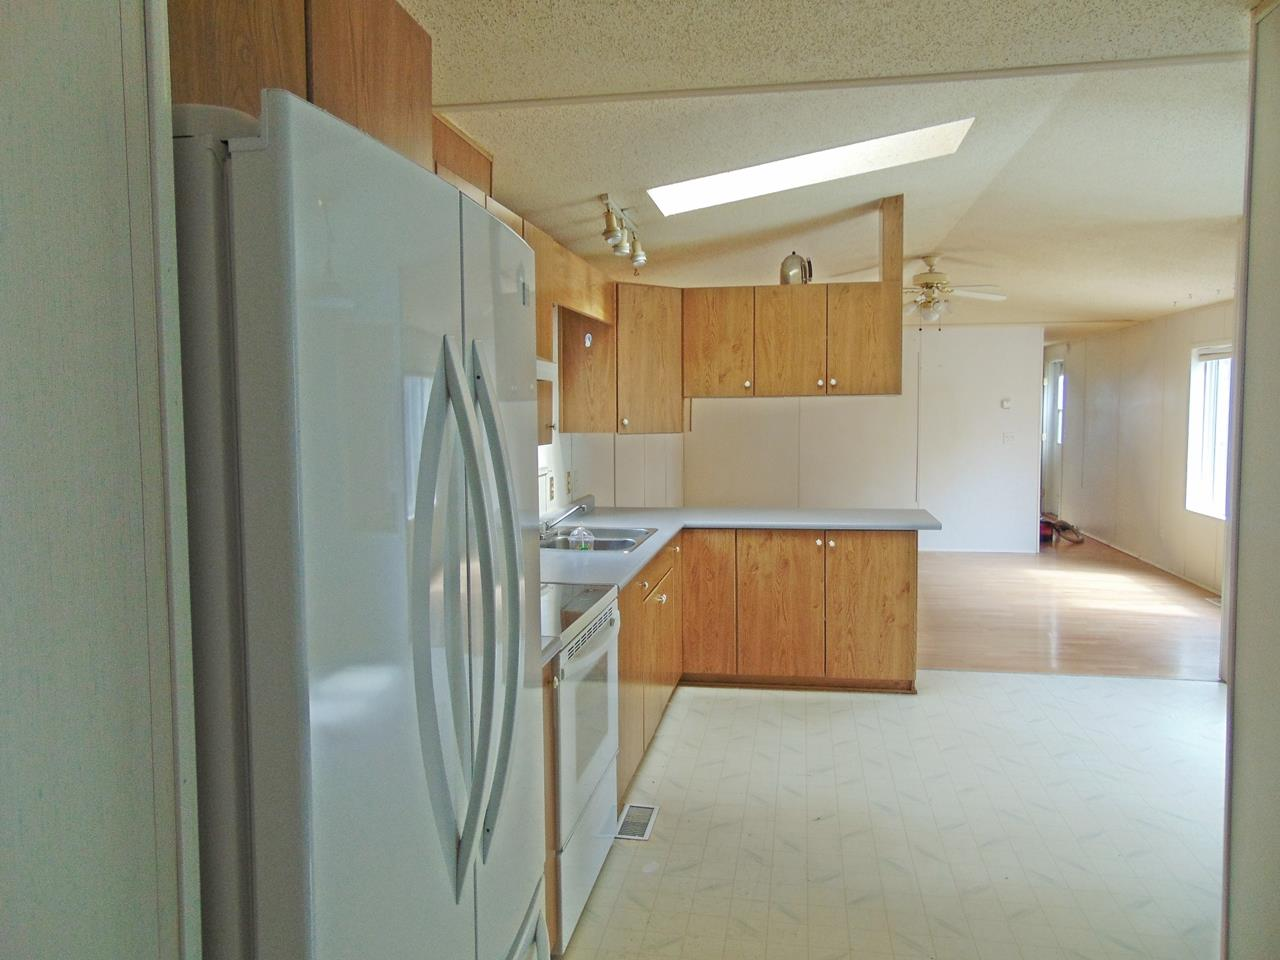 Photo 5: 56215 Rge Rd 234: Rural Sturgeon County Manufactured Home for sale : MLS(r) # E4063049